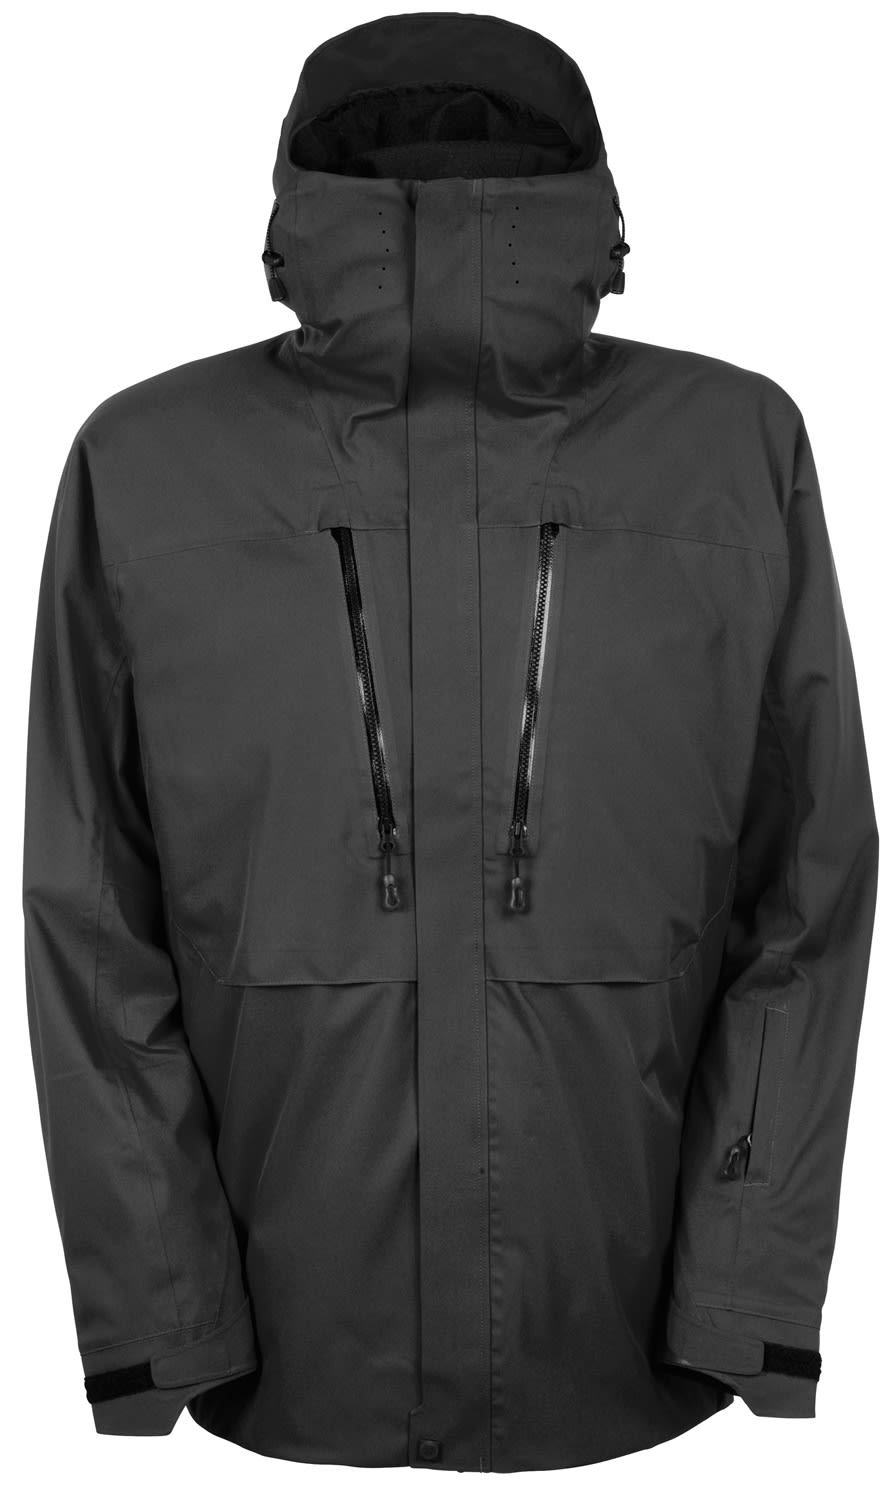 On Sale Down Jackets - up to 40% off